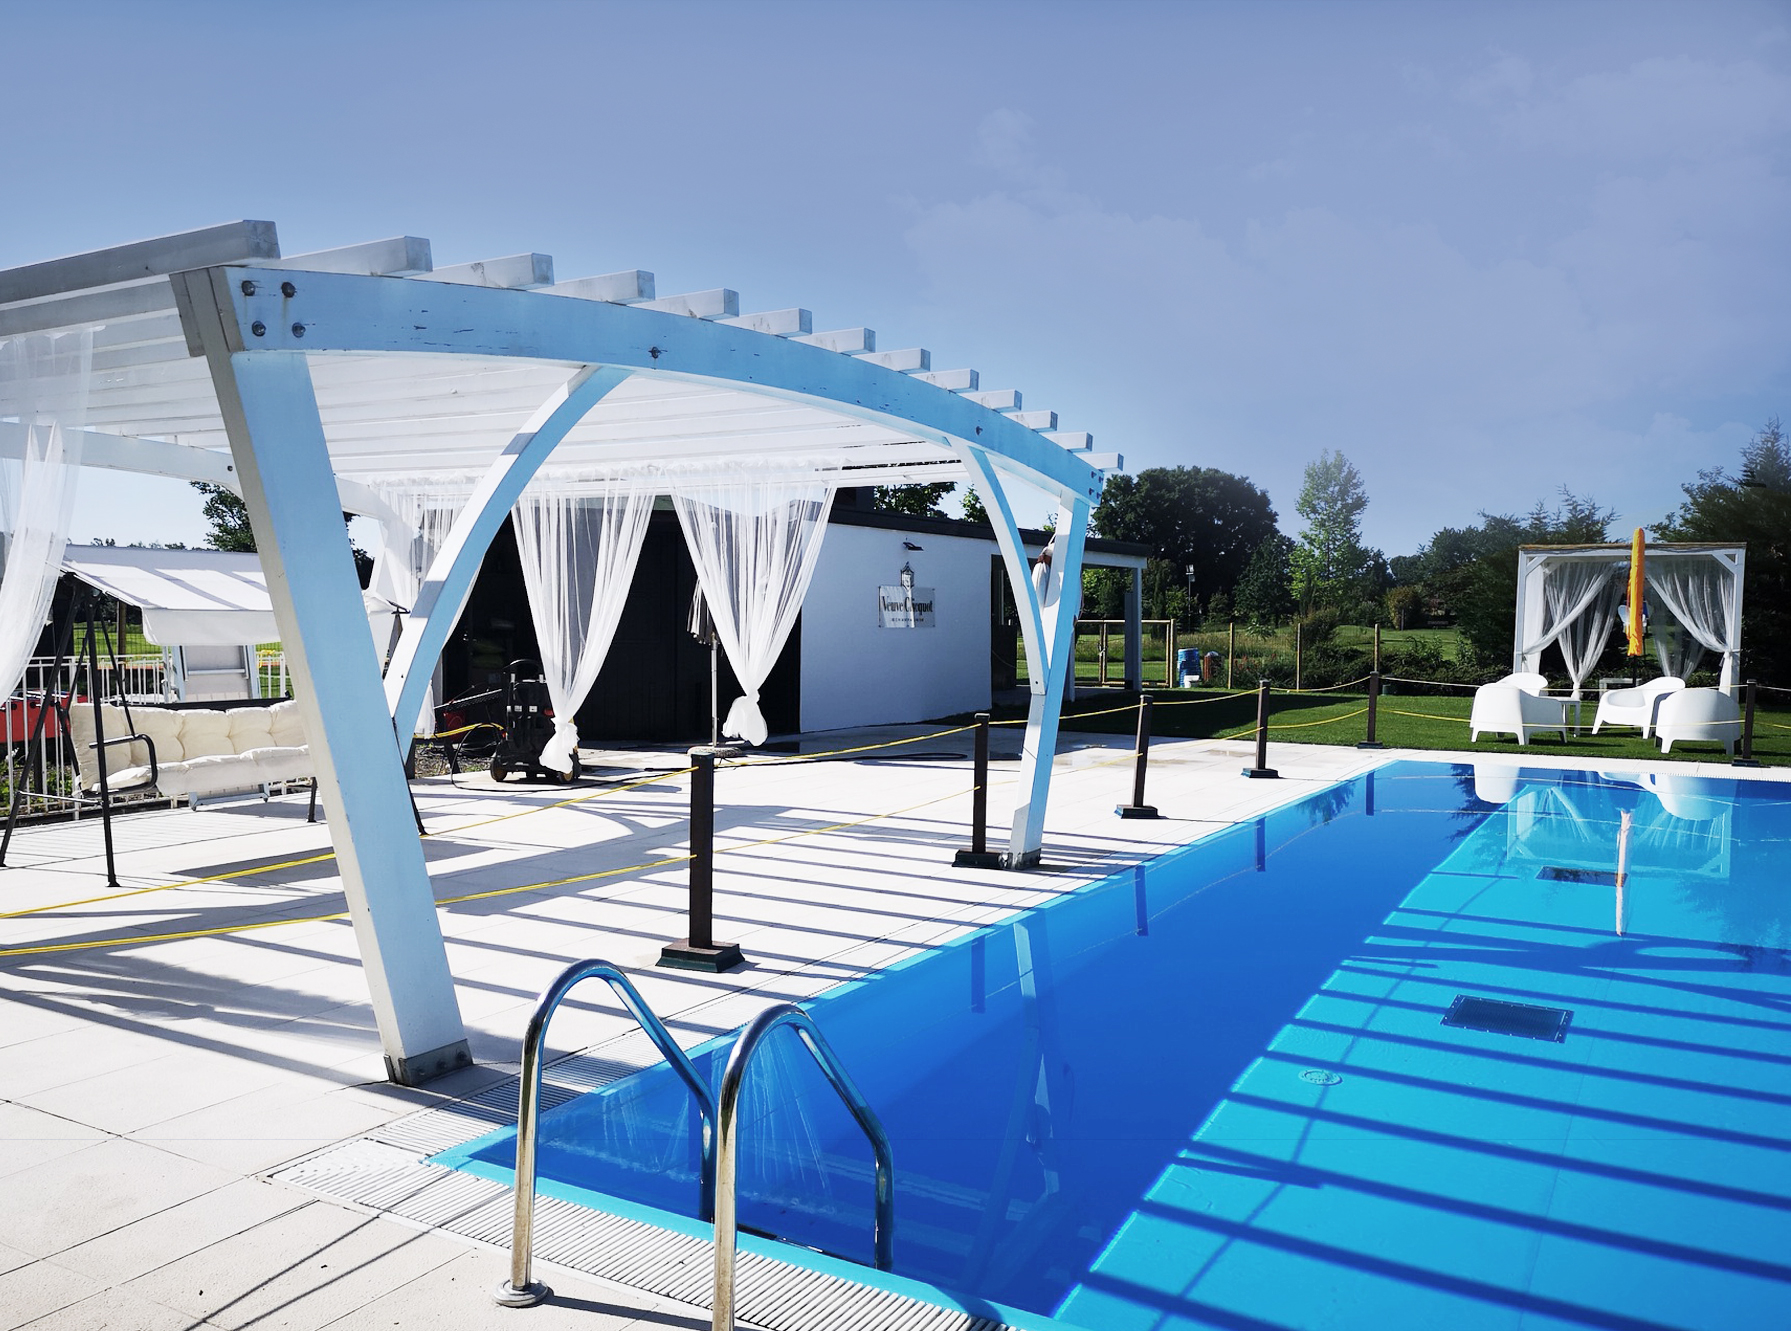 Swimming pool parma golf - Piscina moletolo parma ...